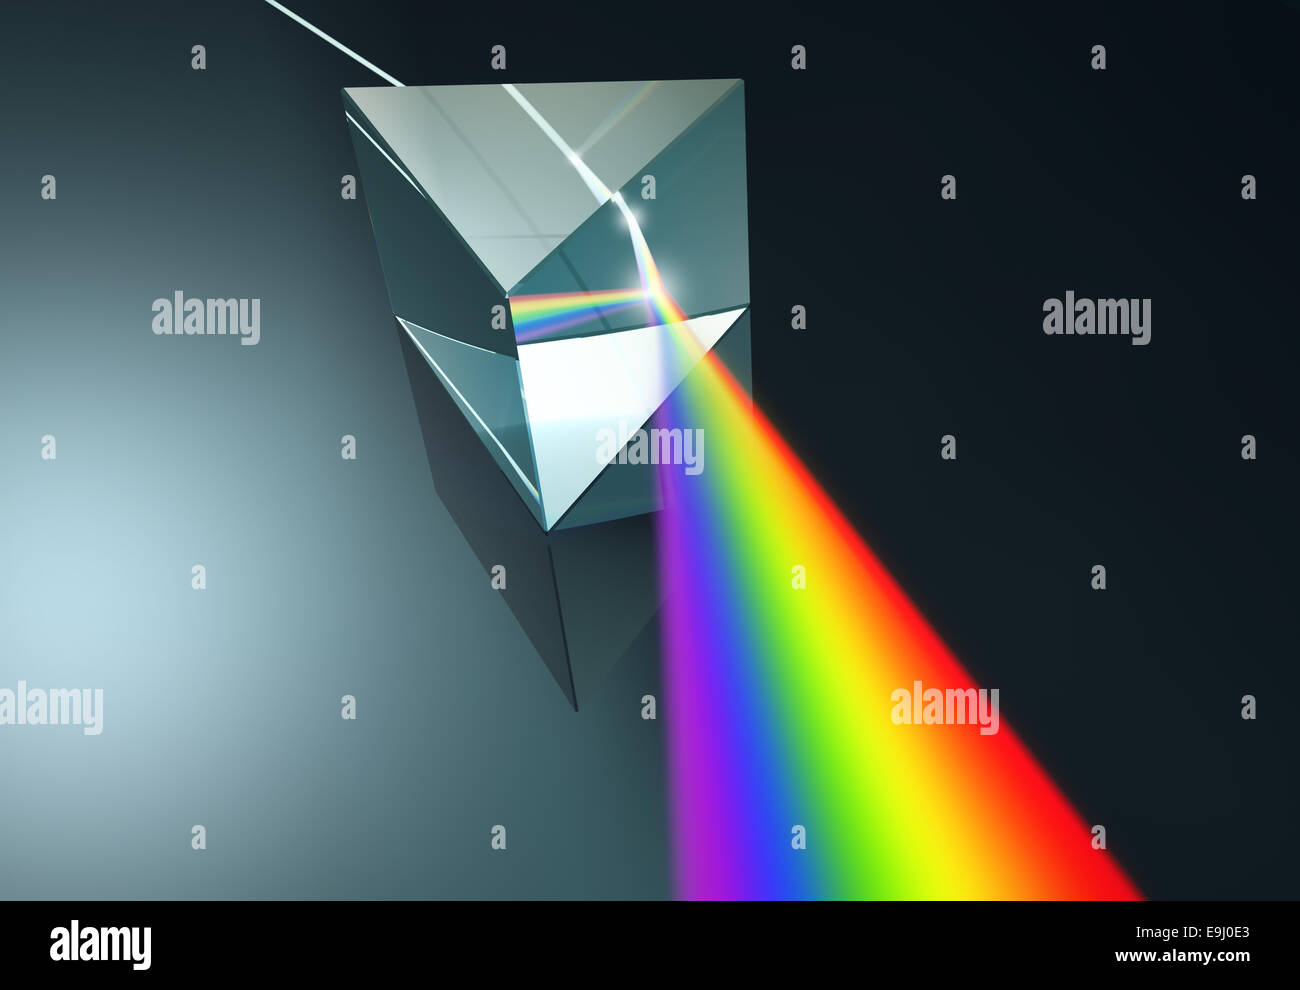 The crystal prism disperses white light into many colors. - Stock Image